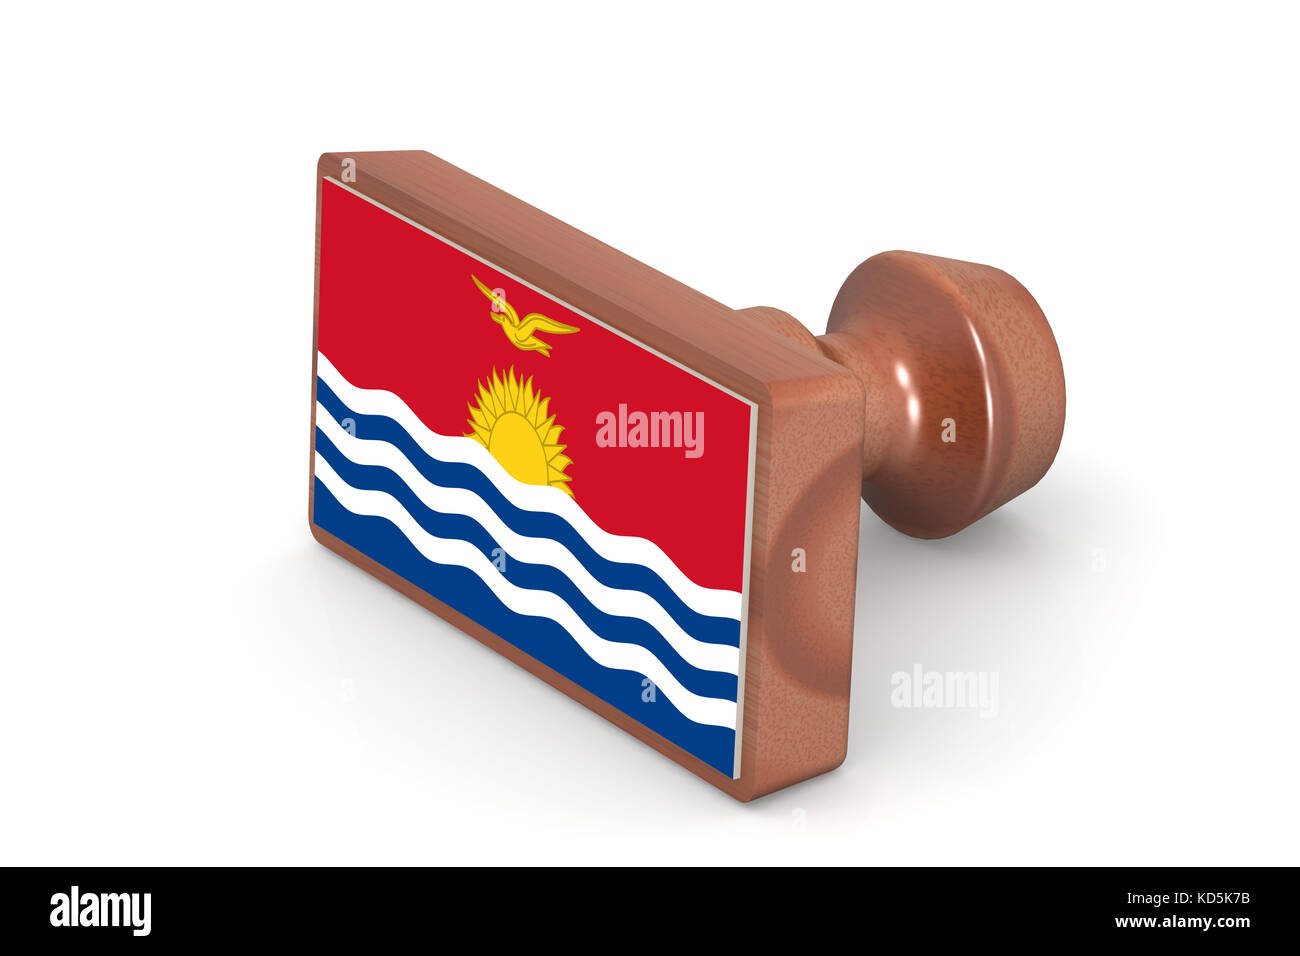 Wooden stamp with Kiribati flag image with hi-res rendered artwork that could be used for any graphic design. - Stock Image